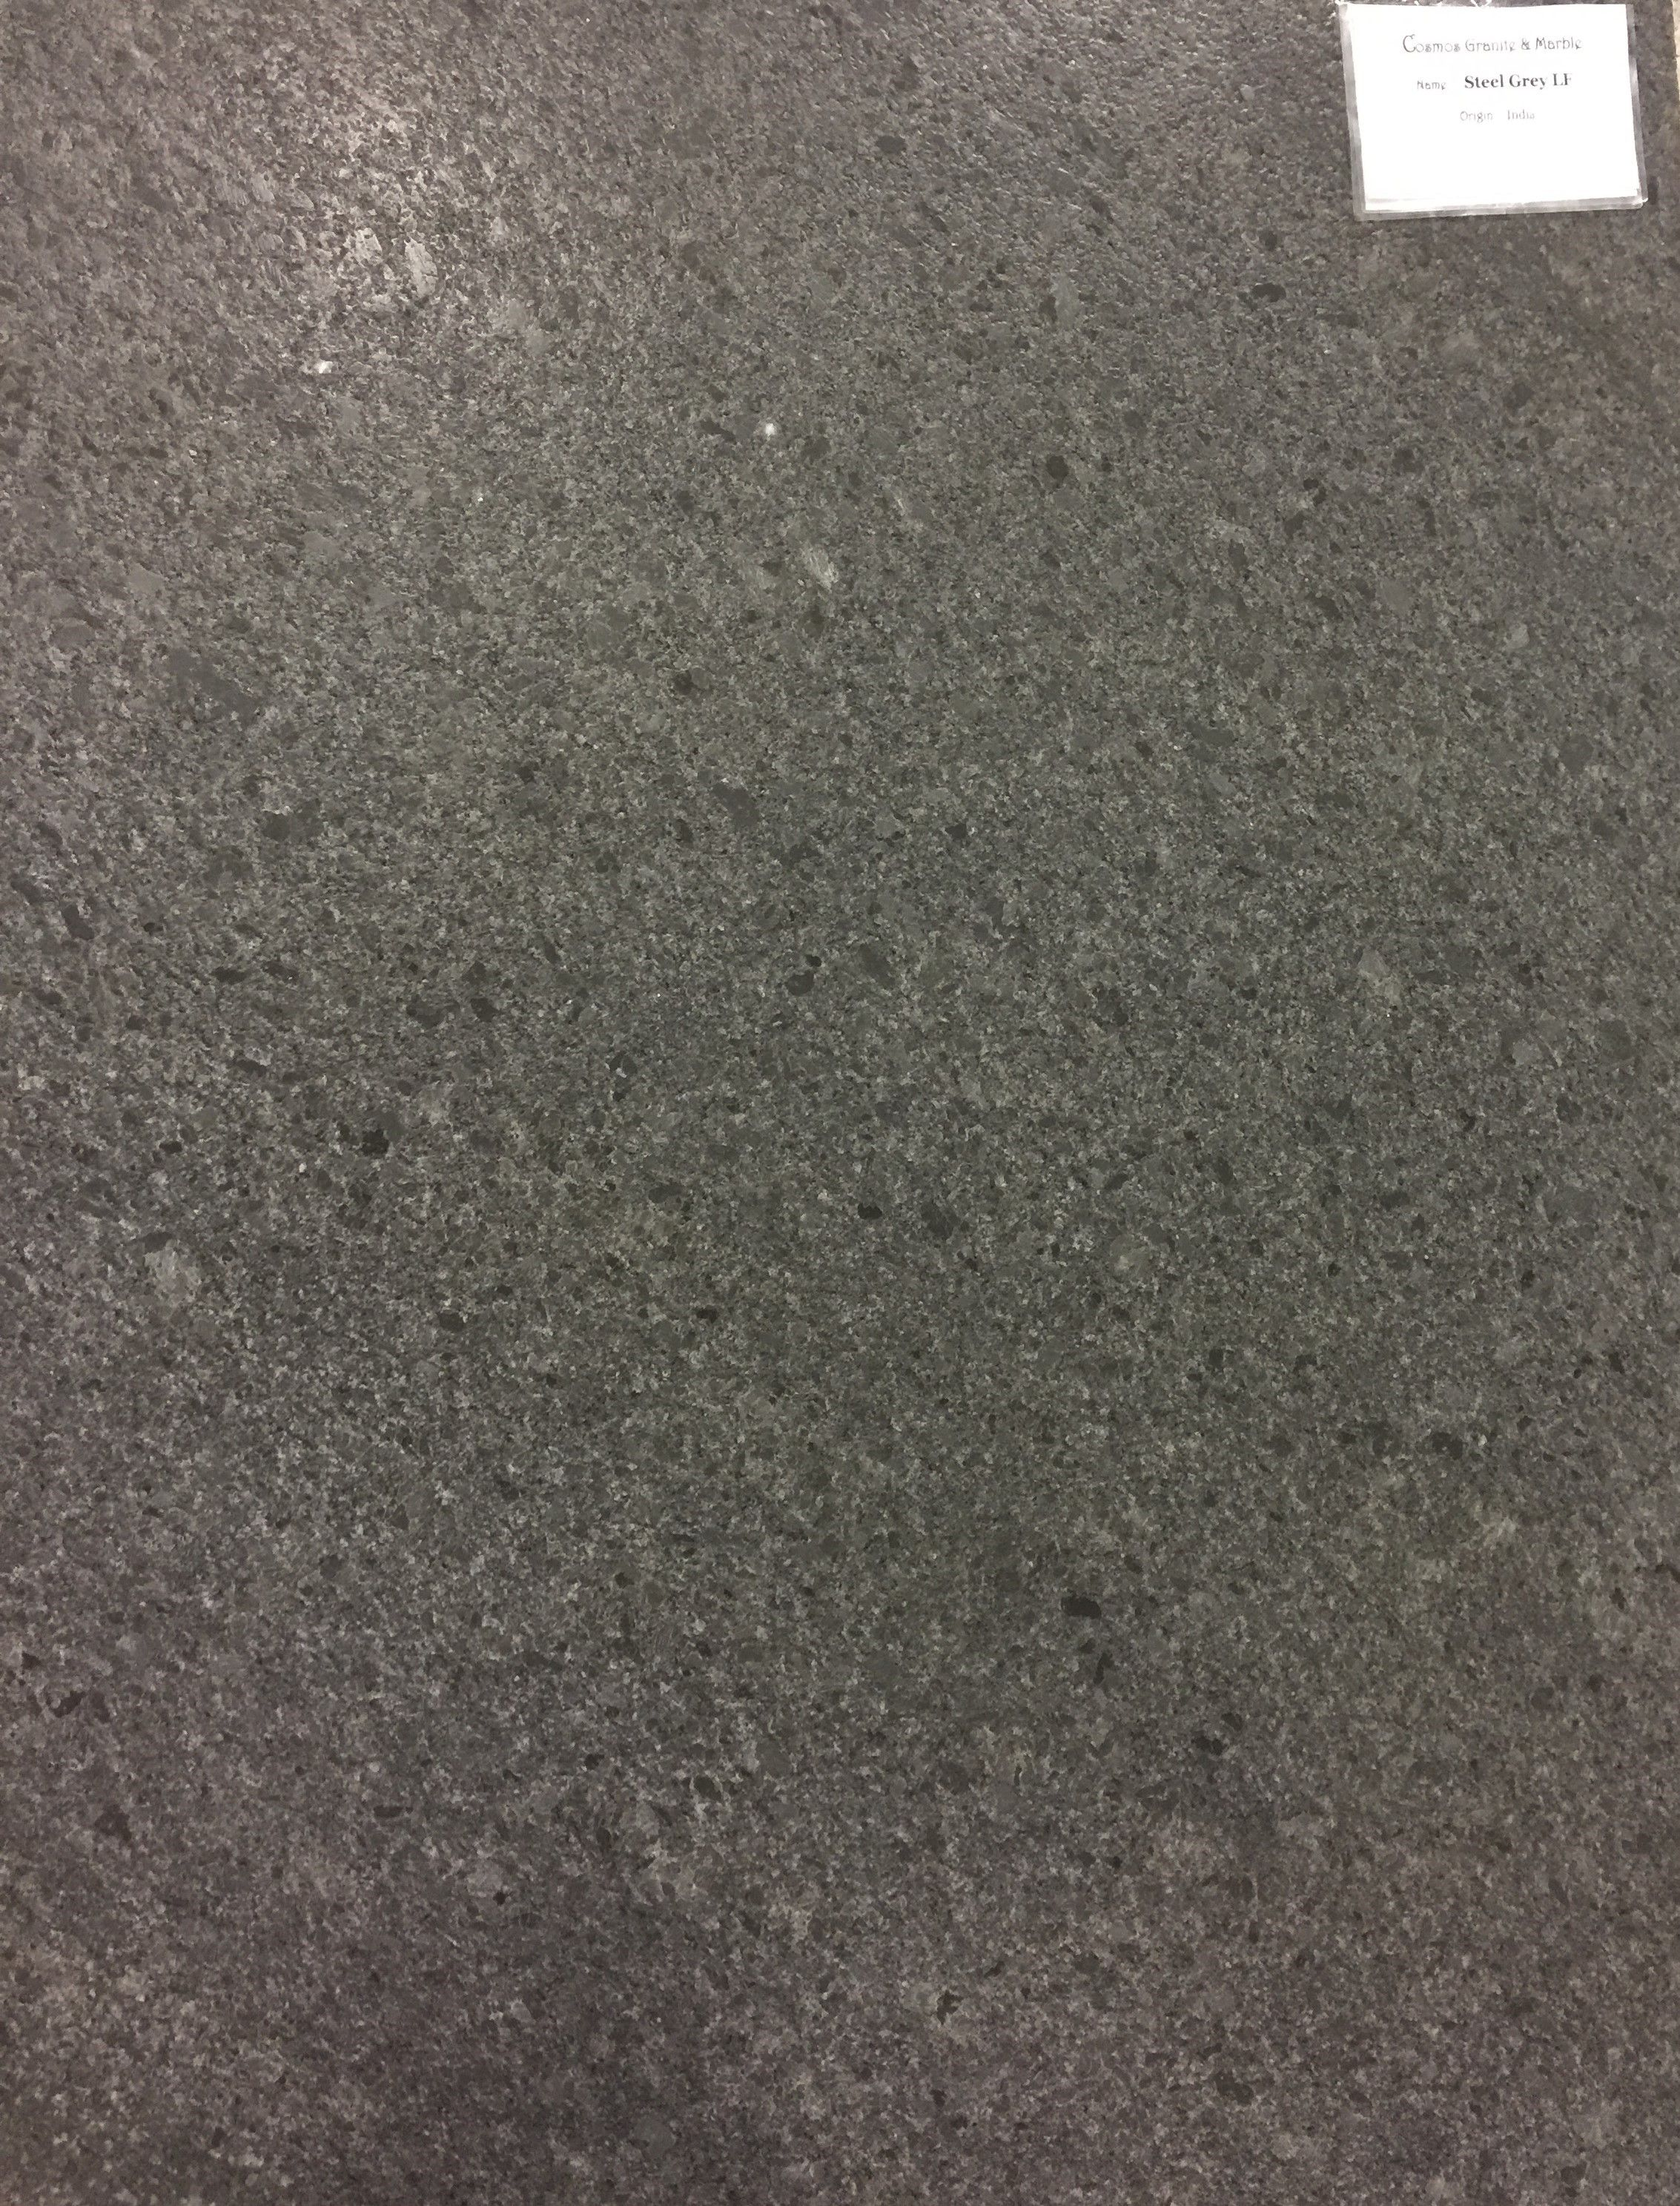 Steel Gray Granite Leathered Finish Leather Granite Countertops Honed Granite Countertops